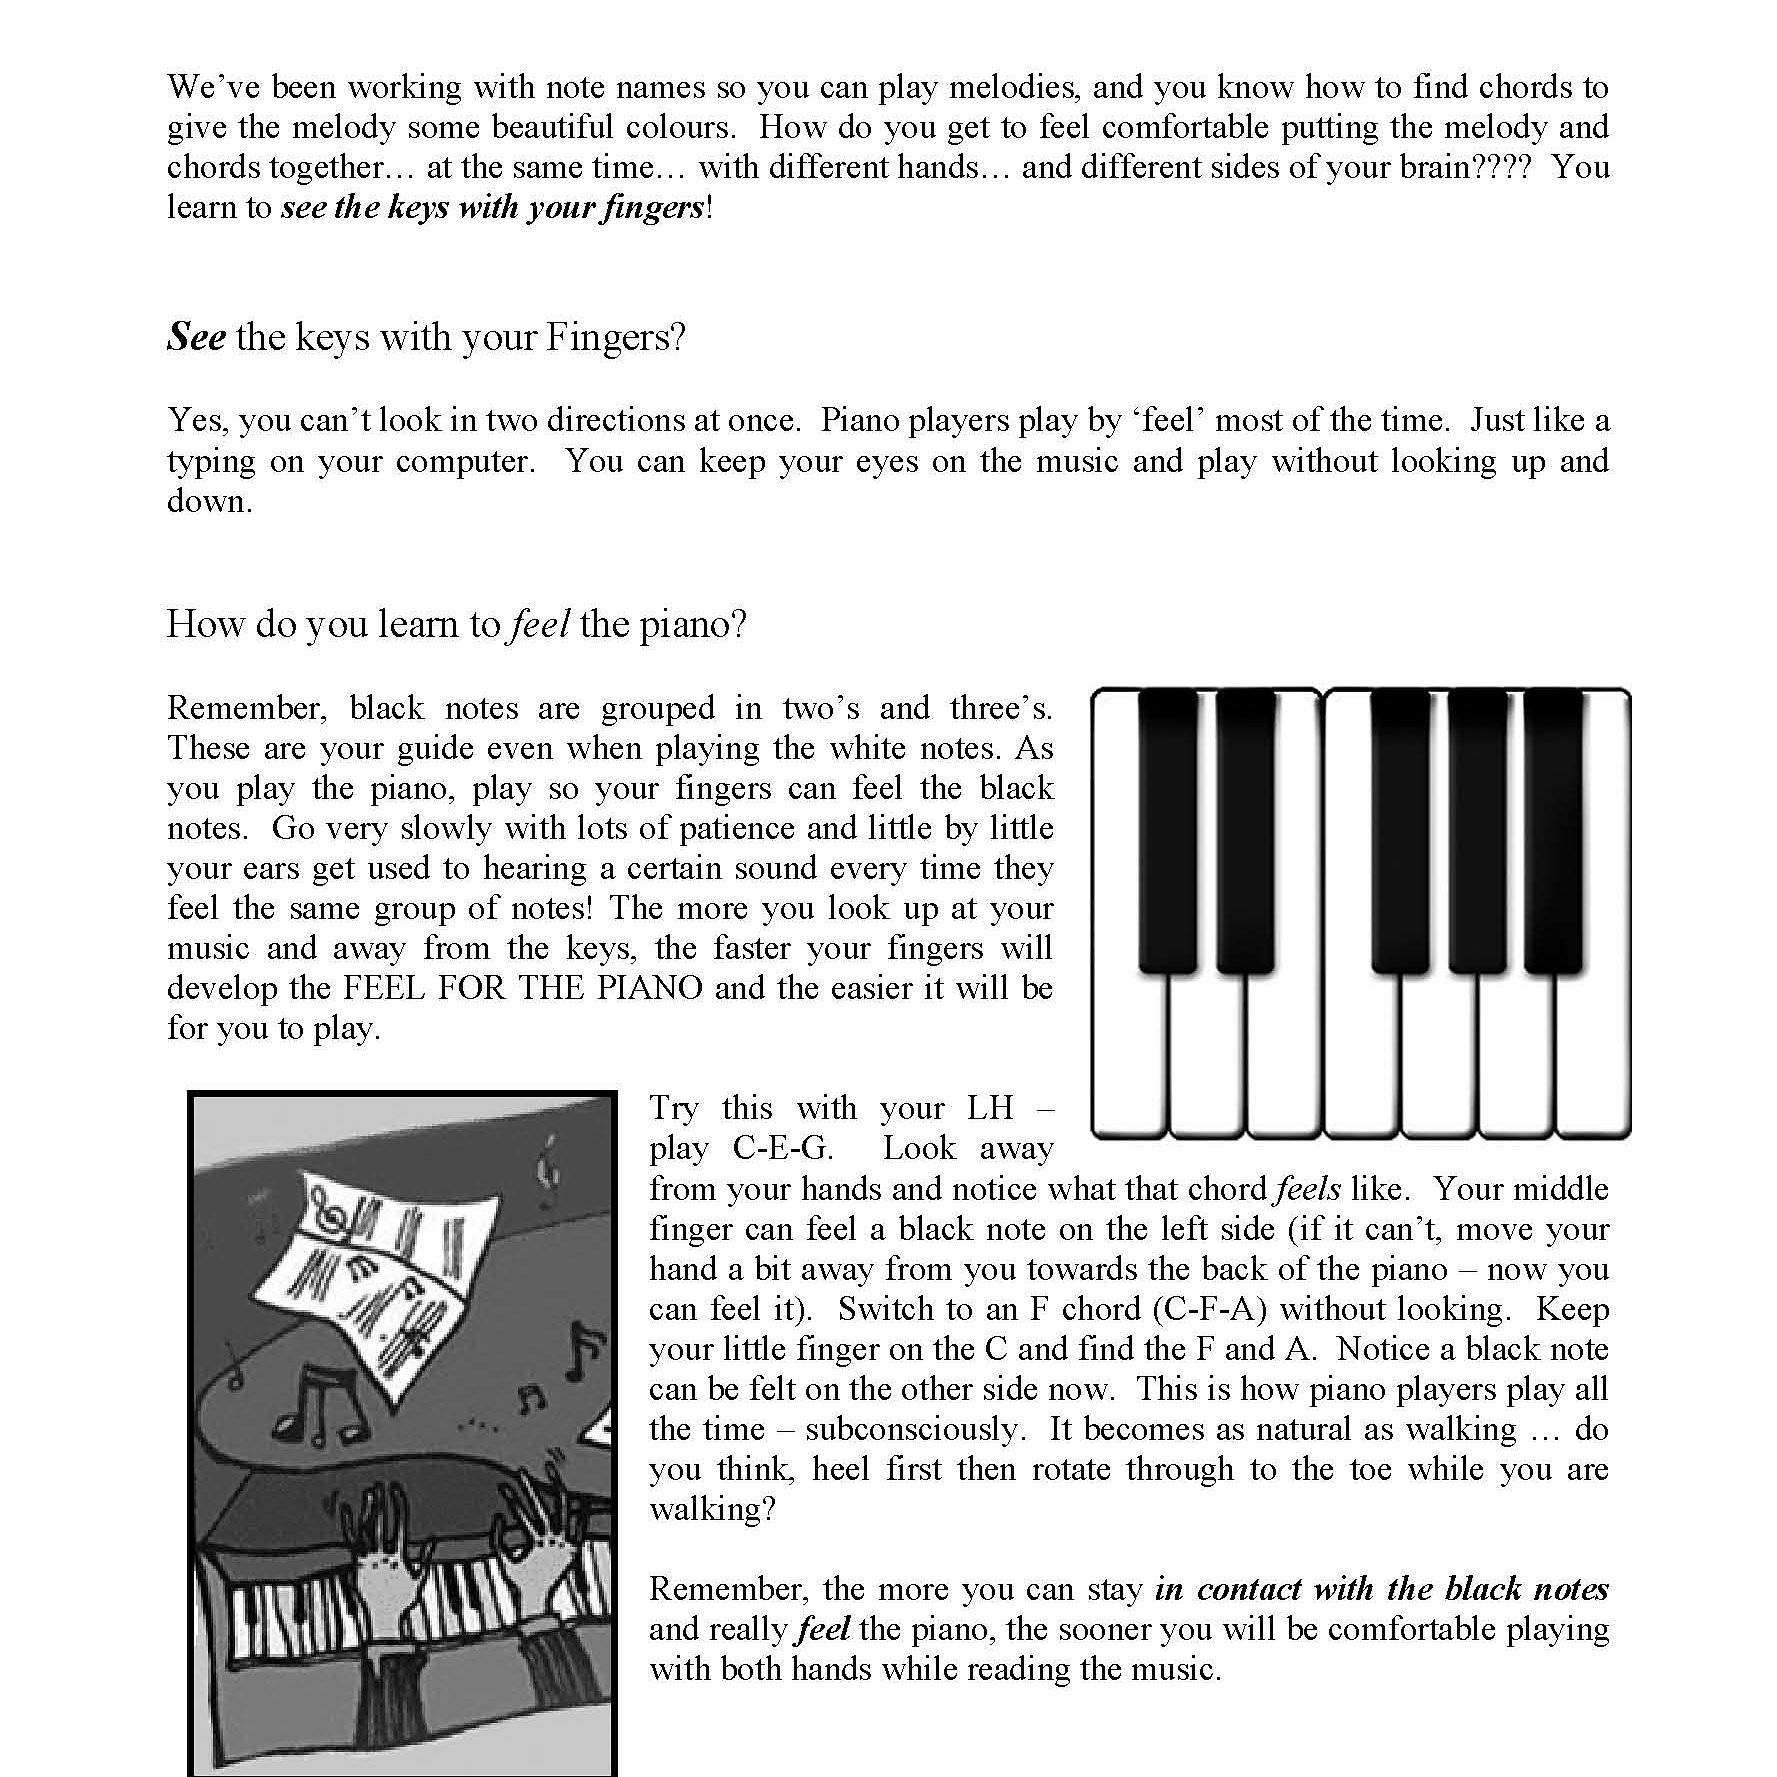 Play piano chords today play piano chords today book 1 with 2 cds we all love the idea of sitting at a piano and playing song after song to our hearts content why arent we doing it many of us have learned to read notes hexwebz Image collections